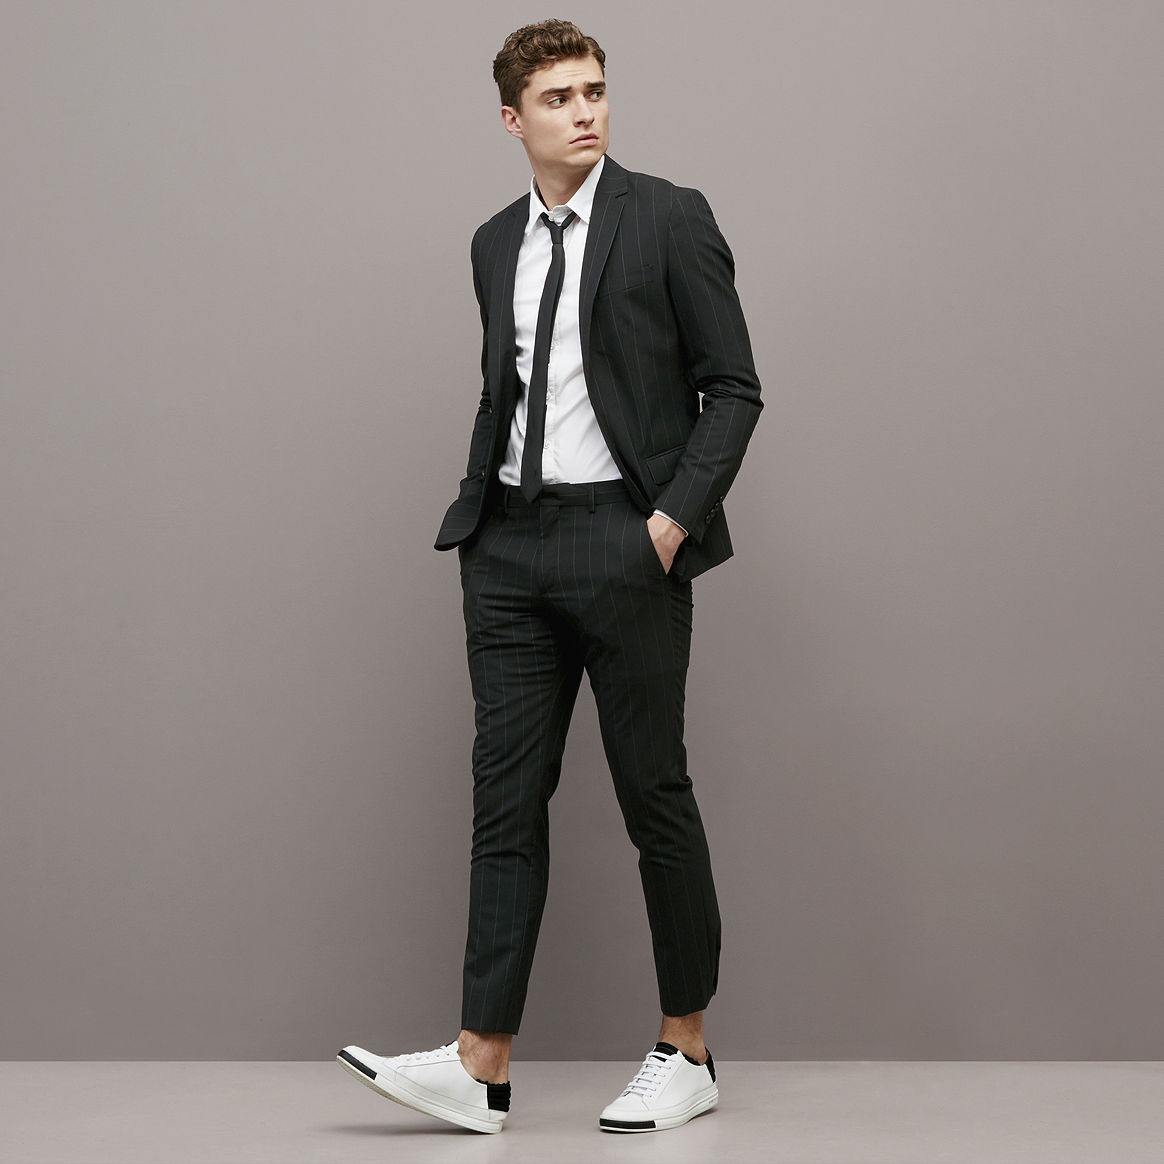 Mens Skinny Fit Suits Dress Yy